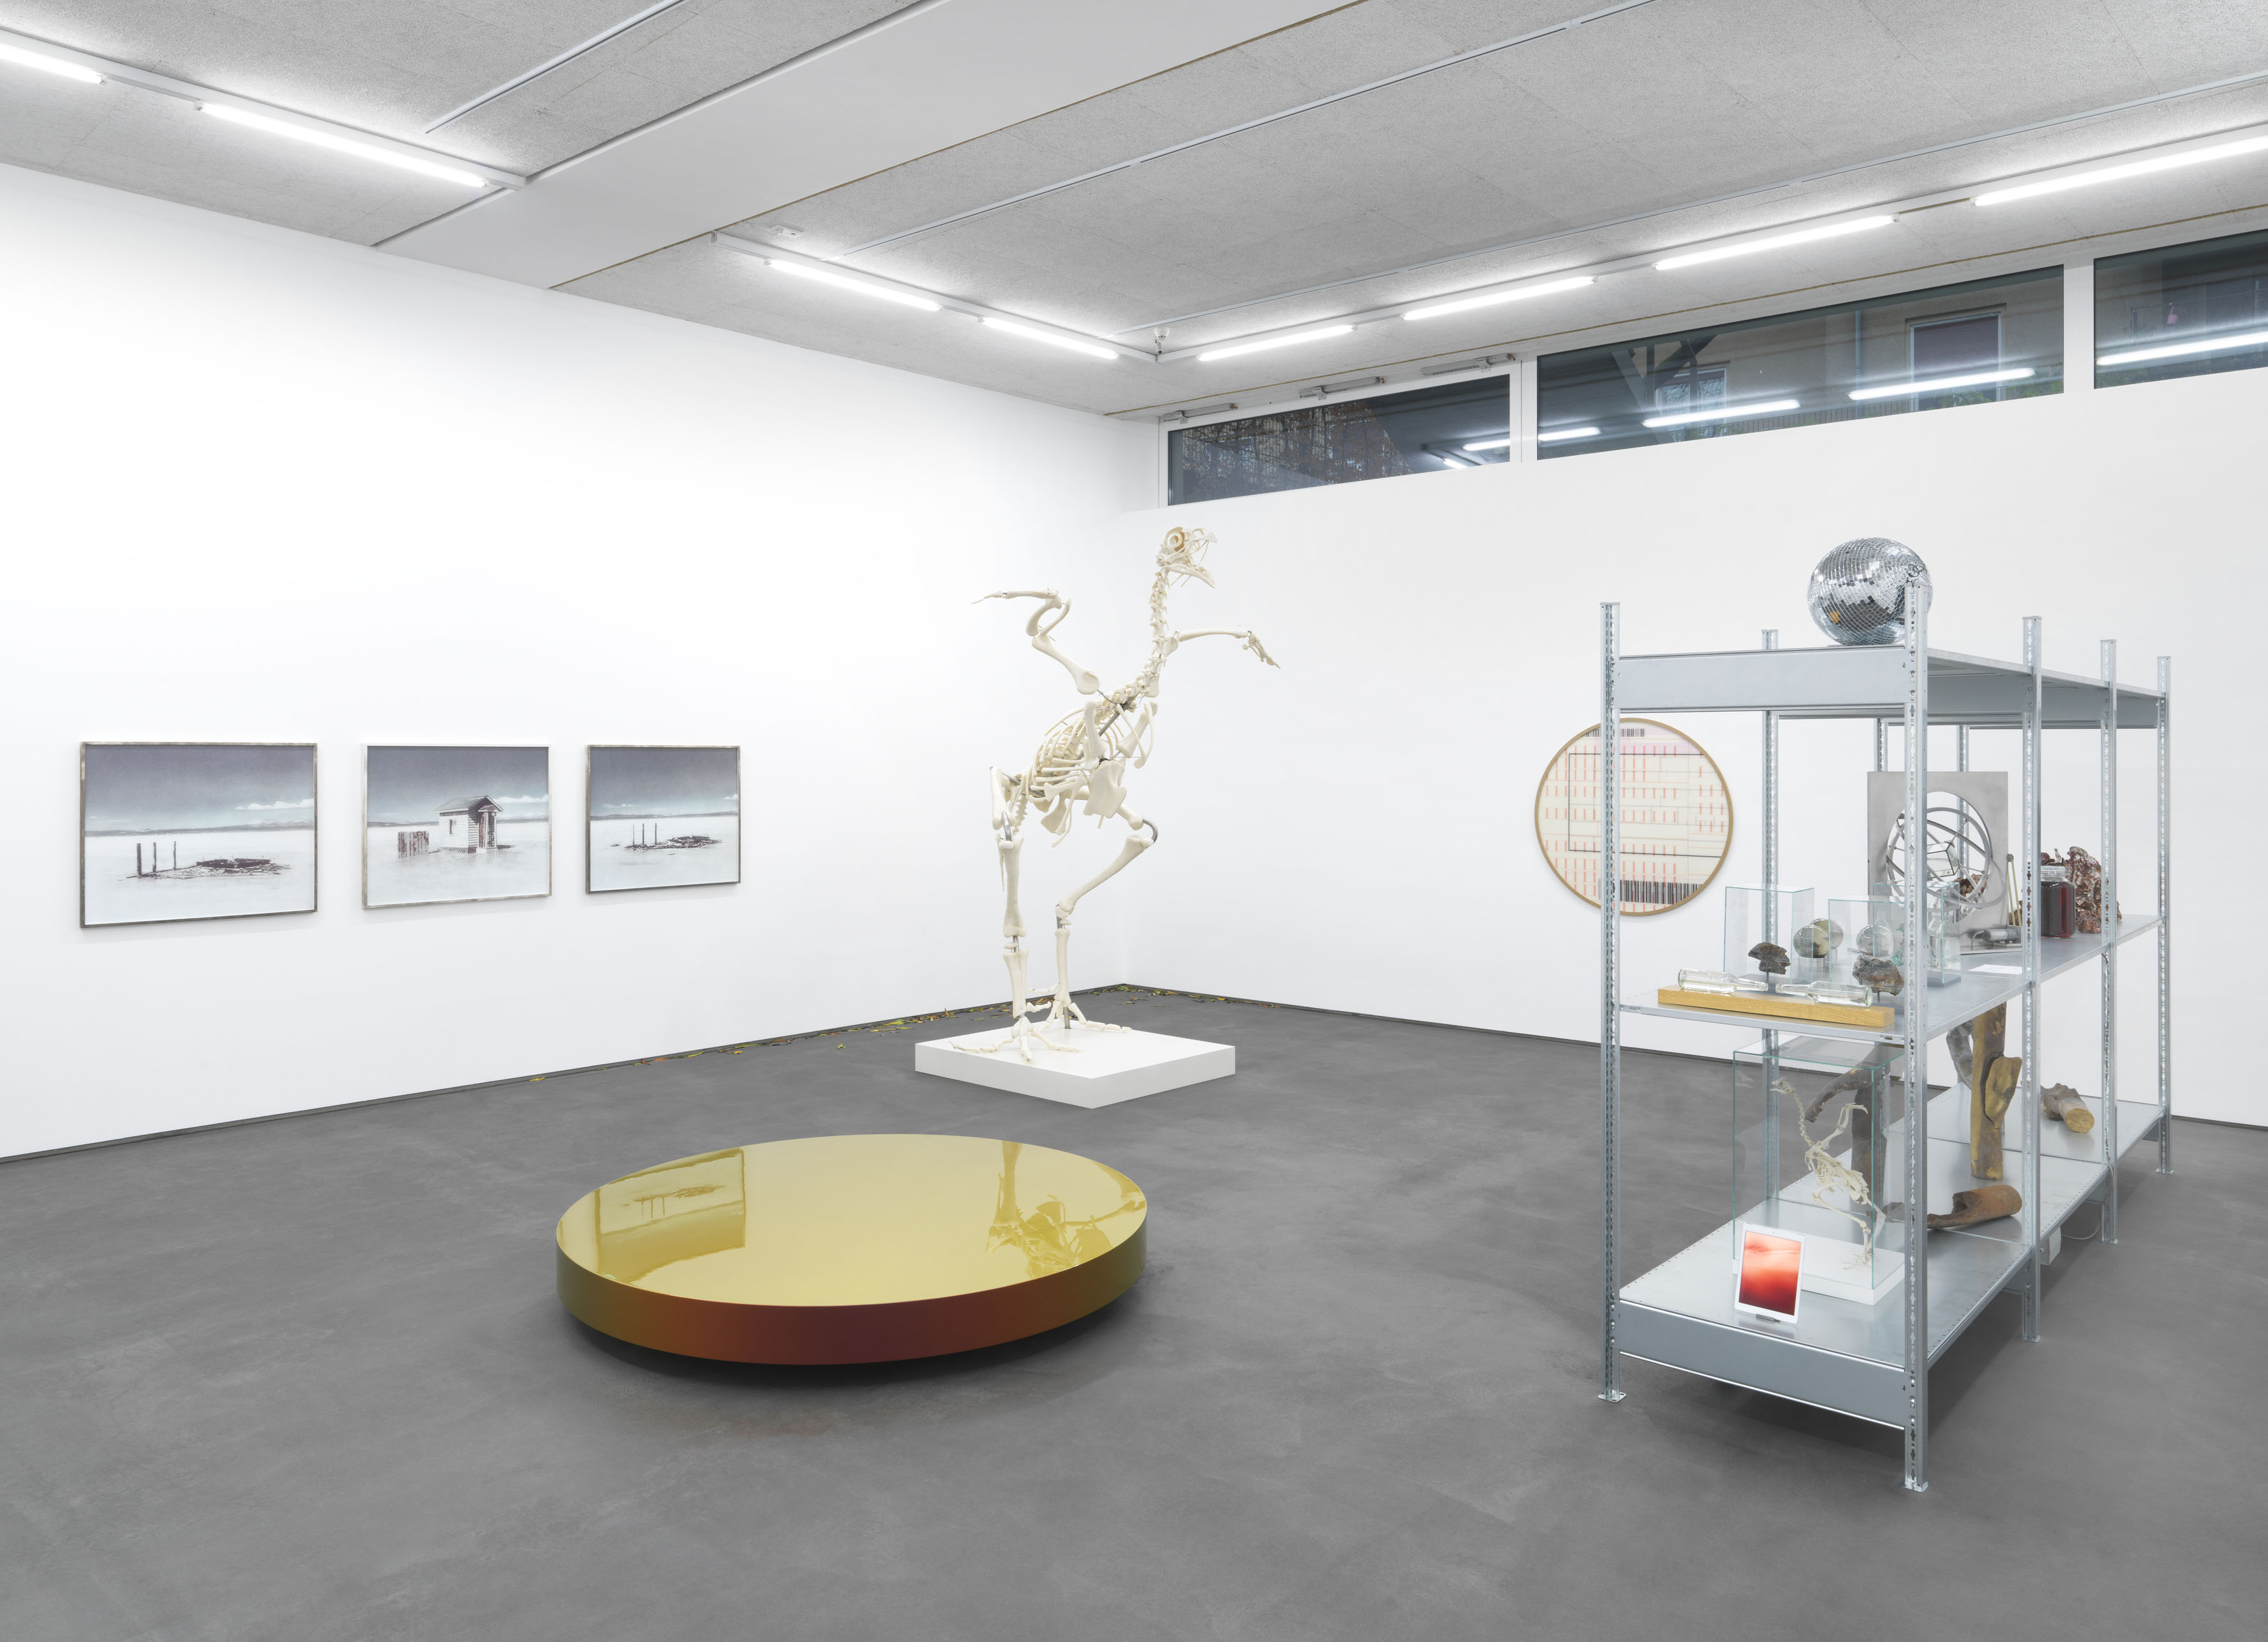 BEOBACHTUNG, 2018, Exhibition view DITTRICH & SCHLECHTRIEM, Berlin Image courtesy DITTRICH & SCHLECHTRIEM, Berlin.